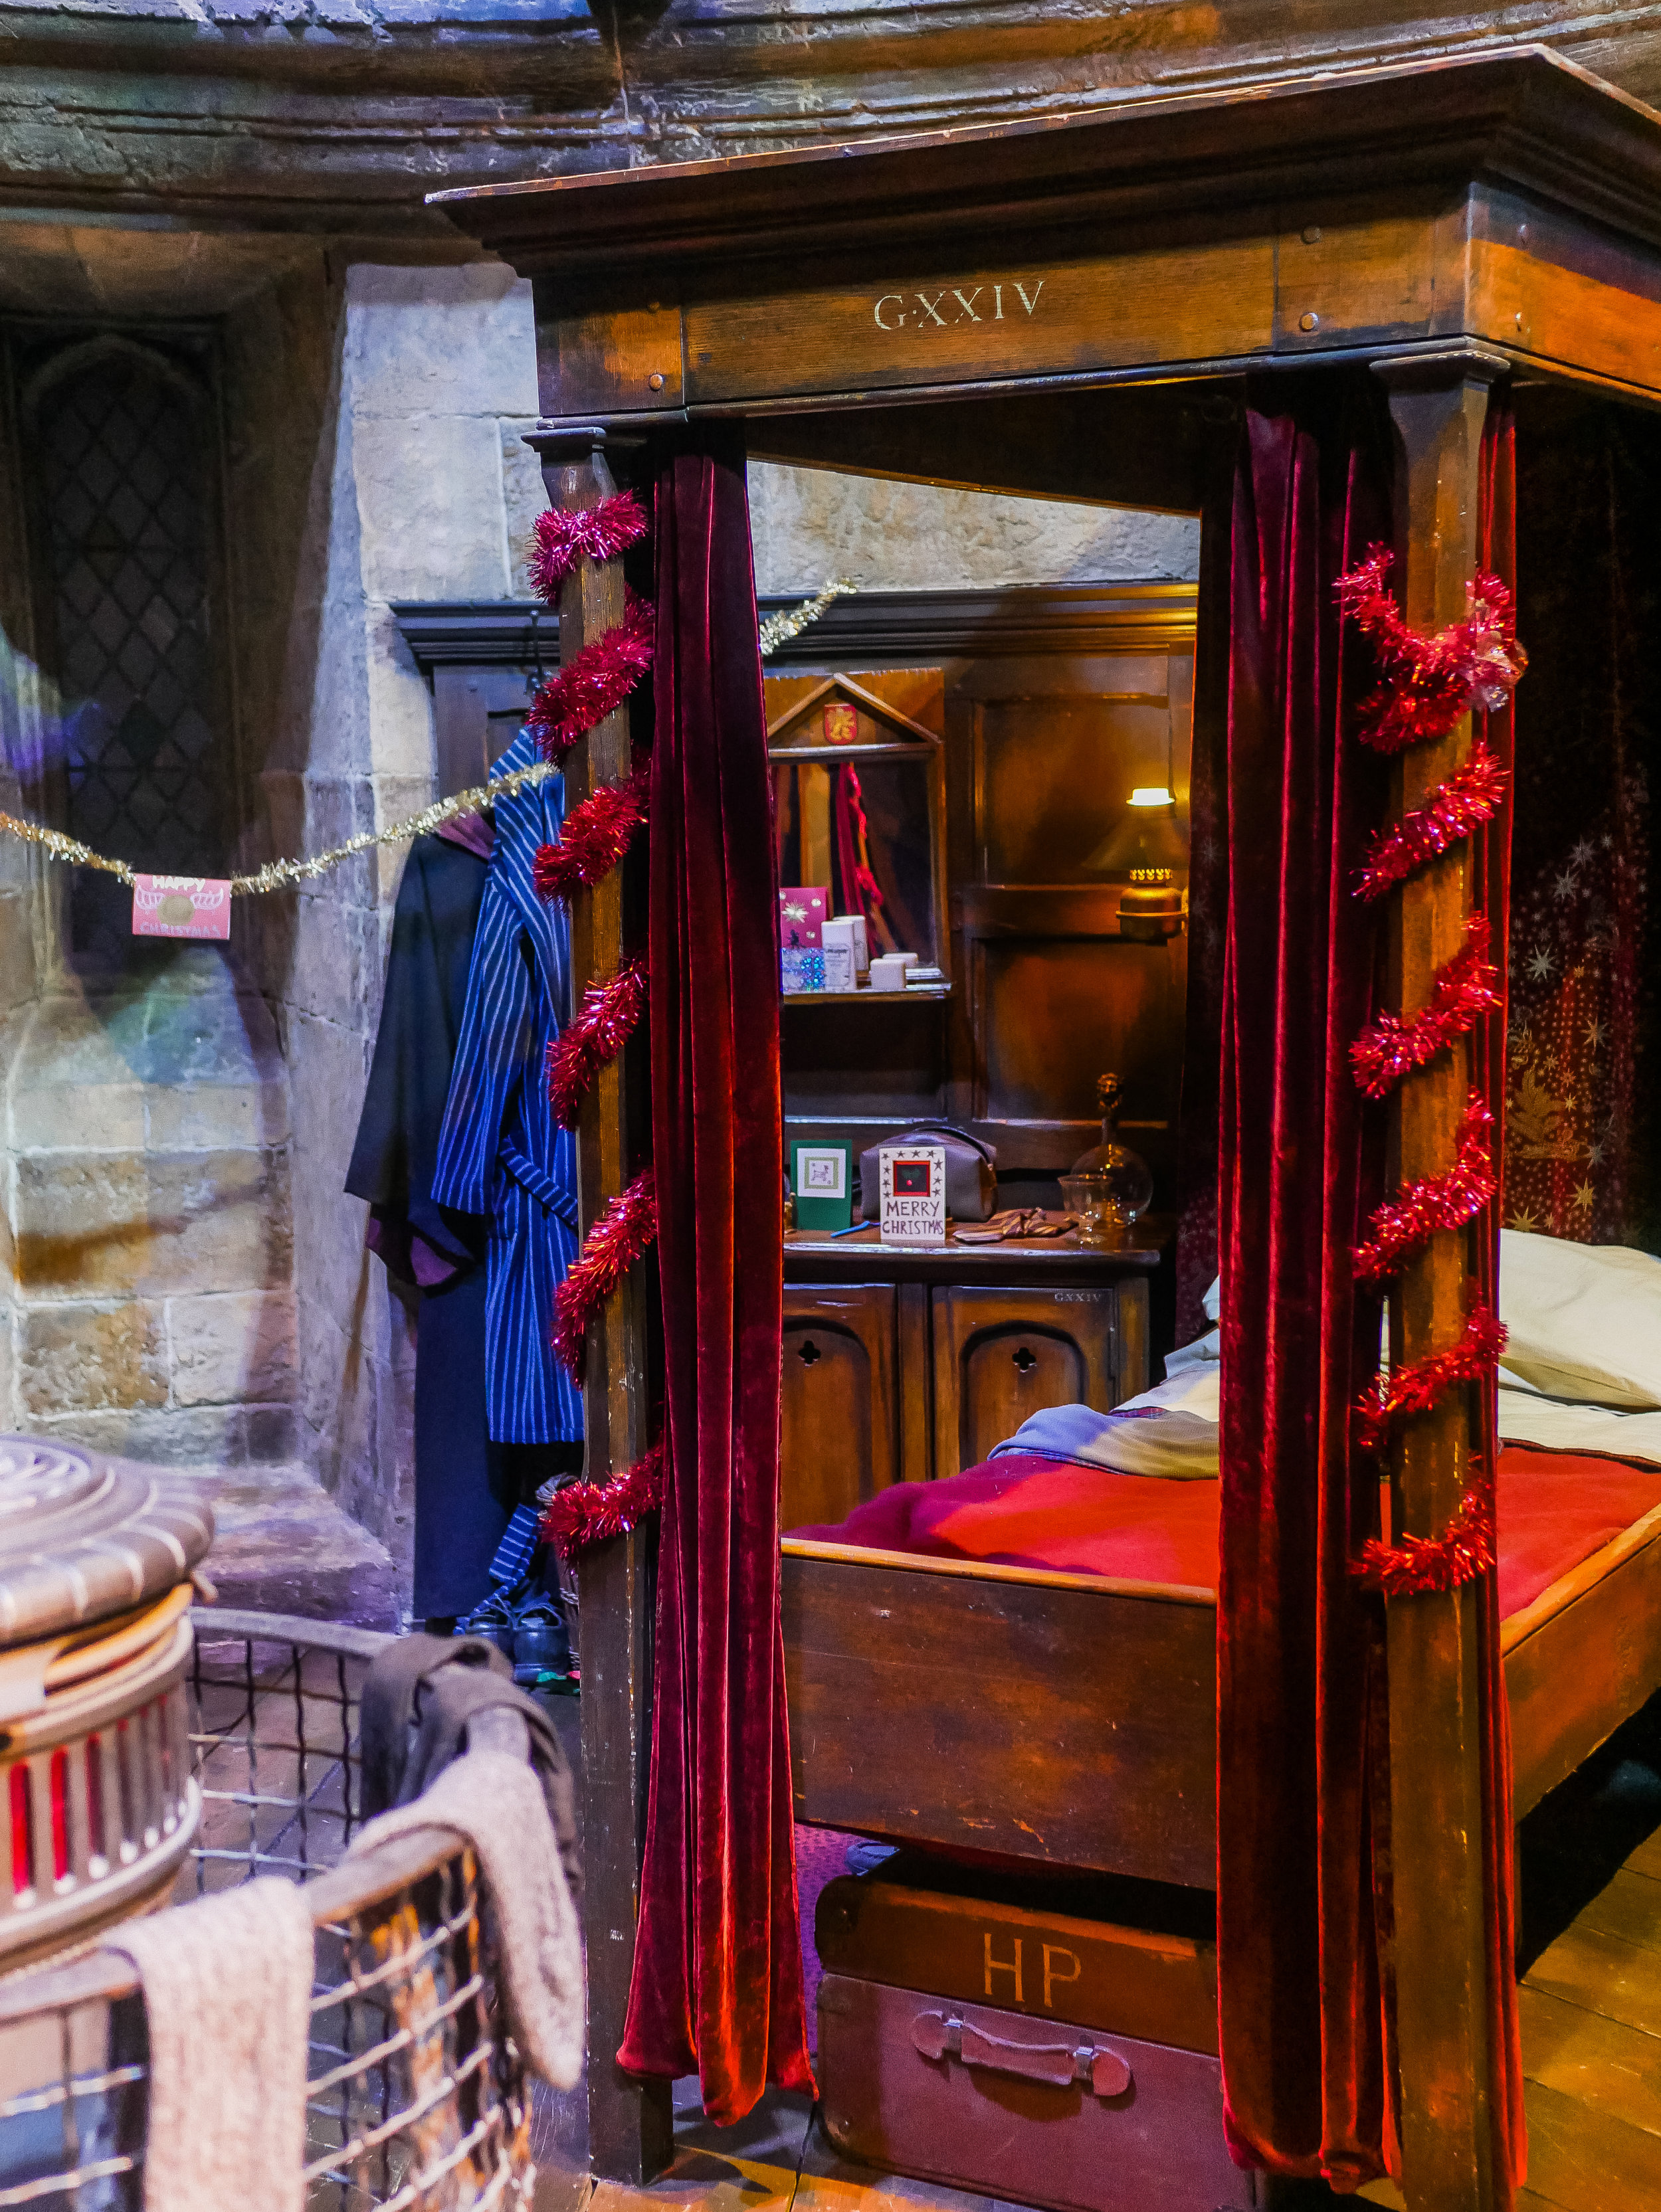 A Muggle's Guide to the Harry Potter Studio Tour London